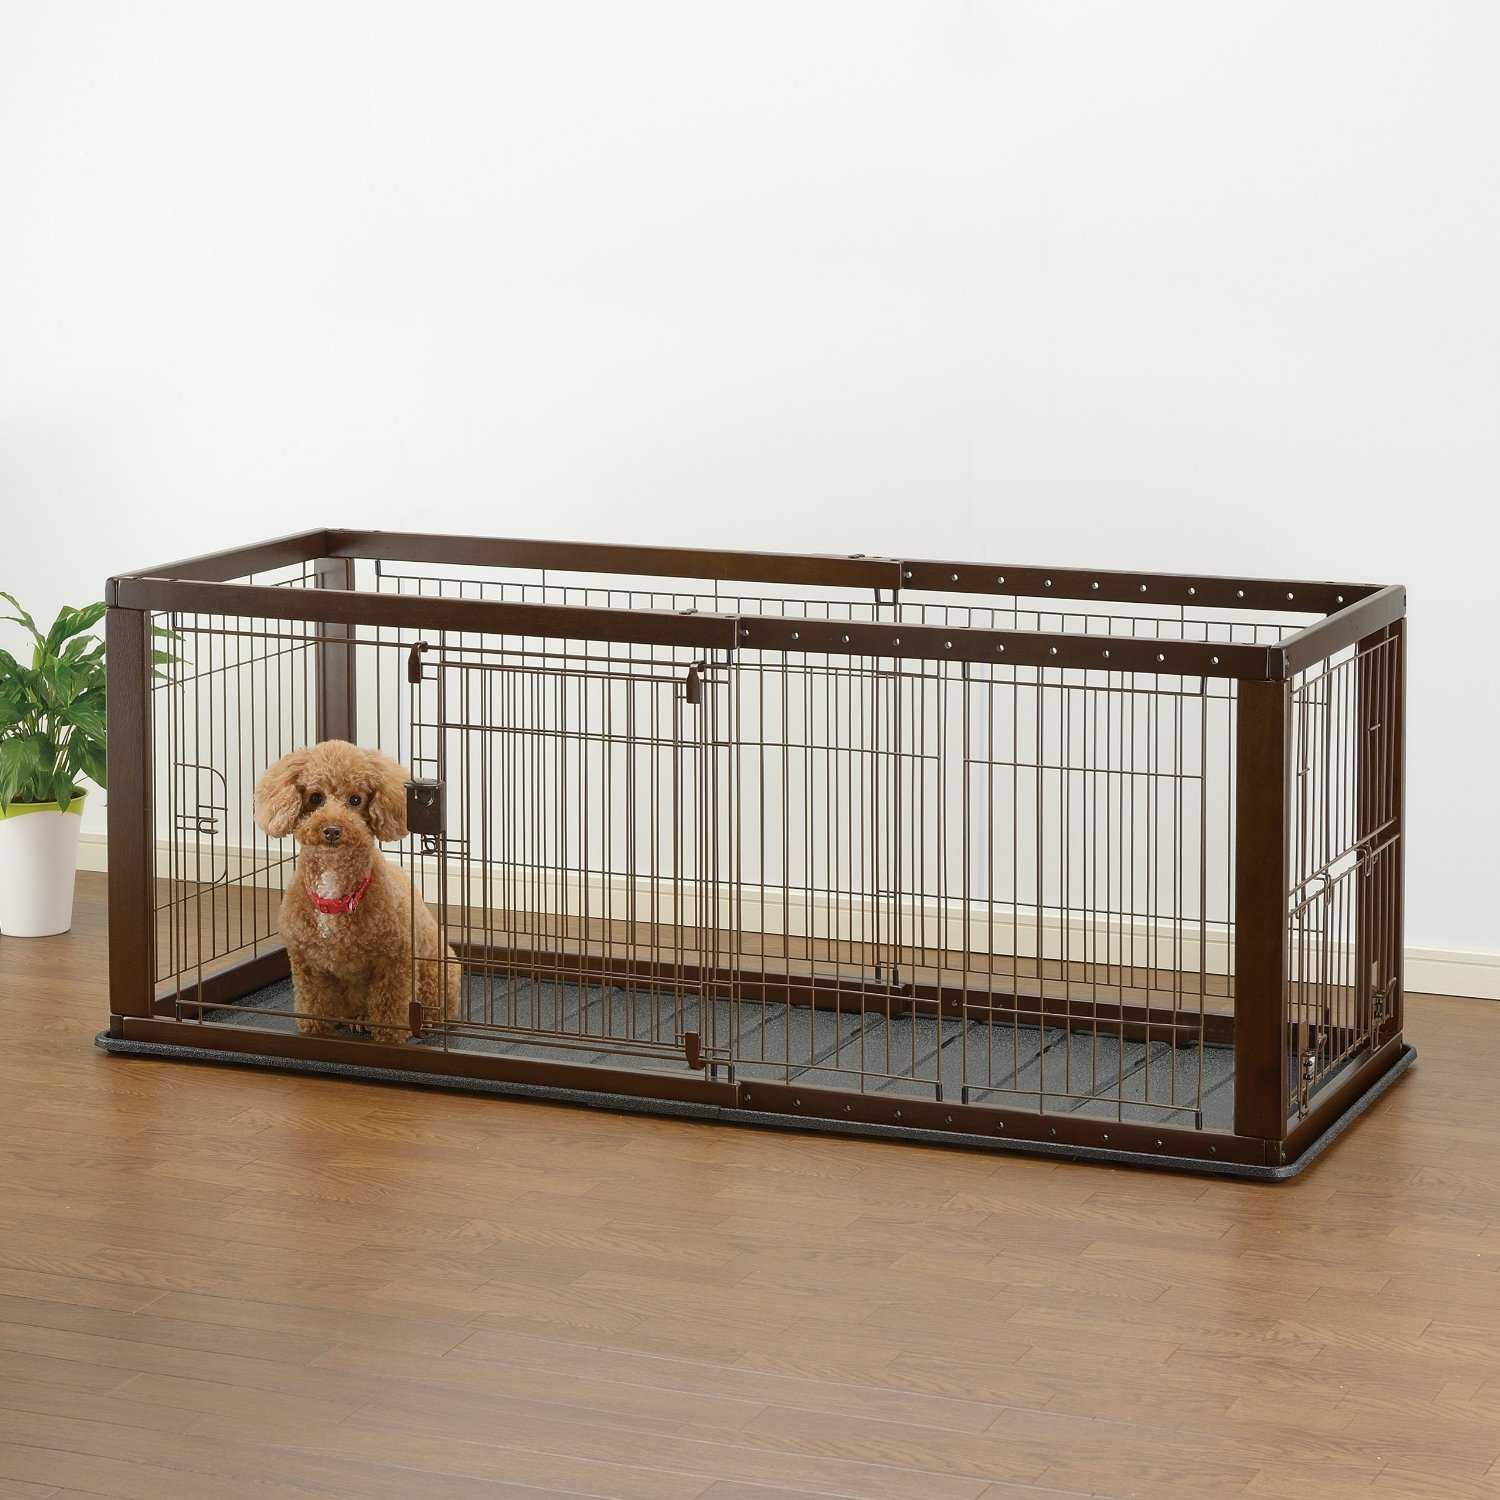 Adjule Dog Crates Are Good For Growing Puppies And Dogs Not To Mention A Brilliant Idea Plausible Option Instill Discipline Security